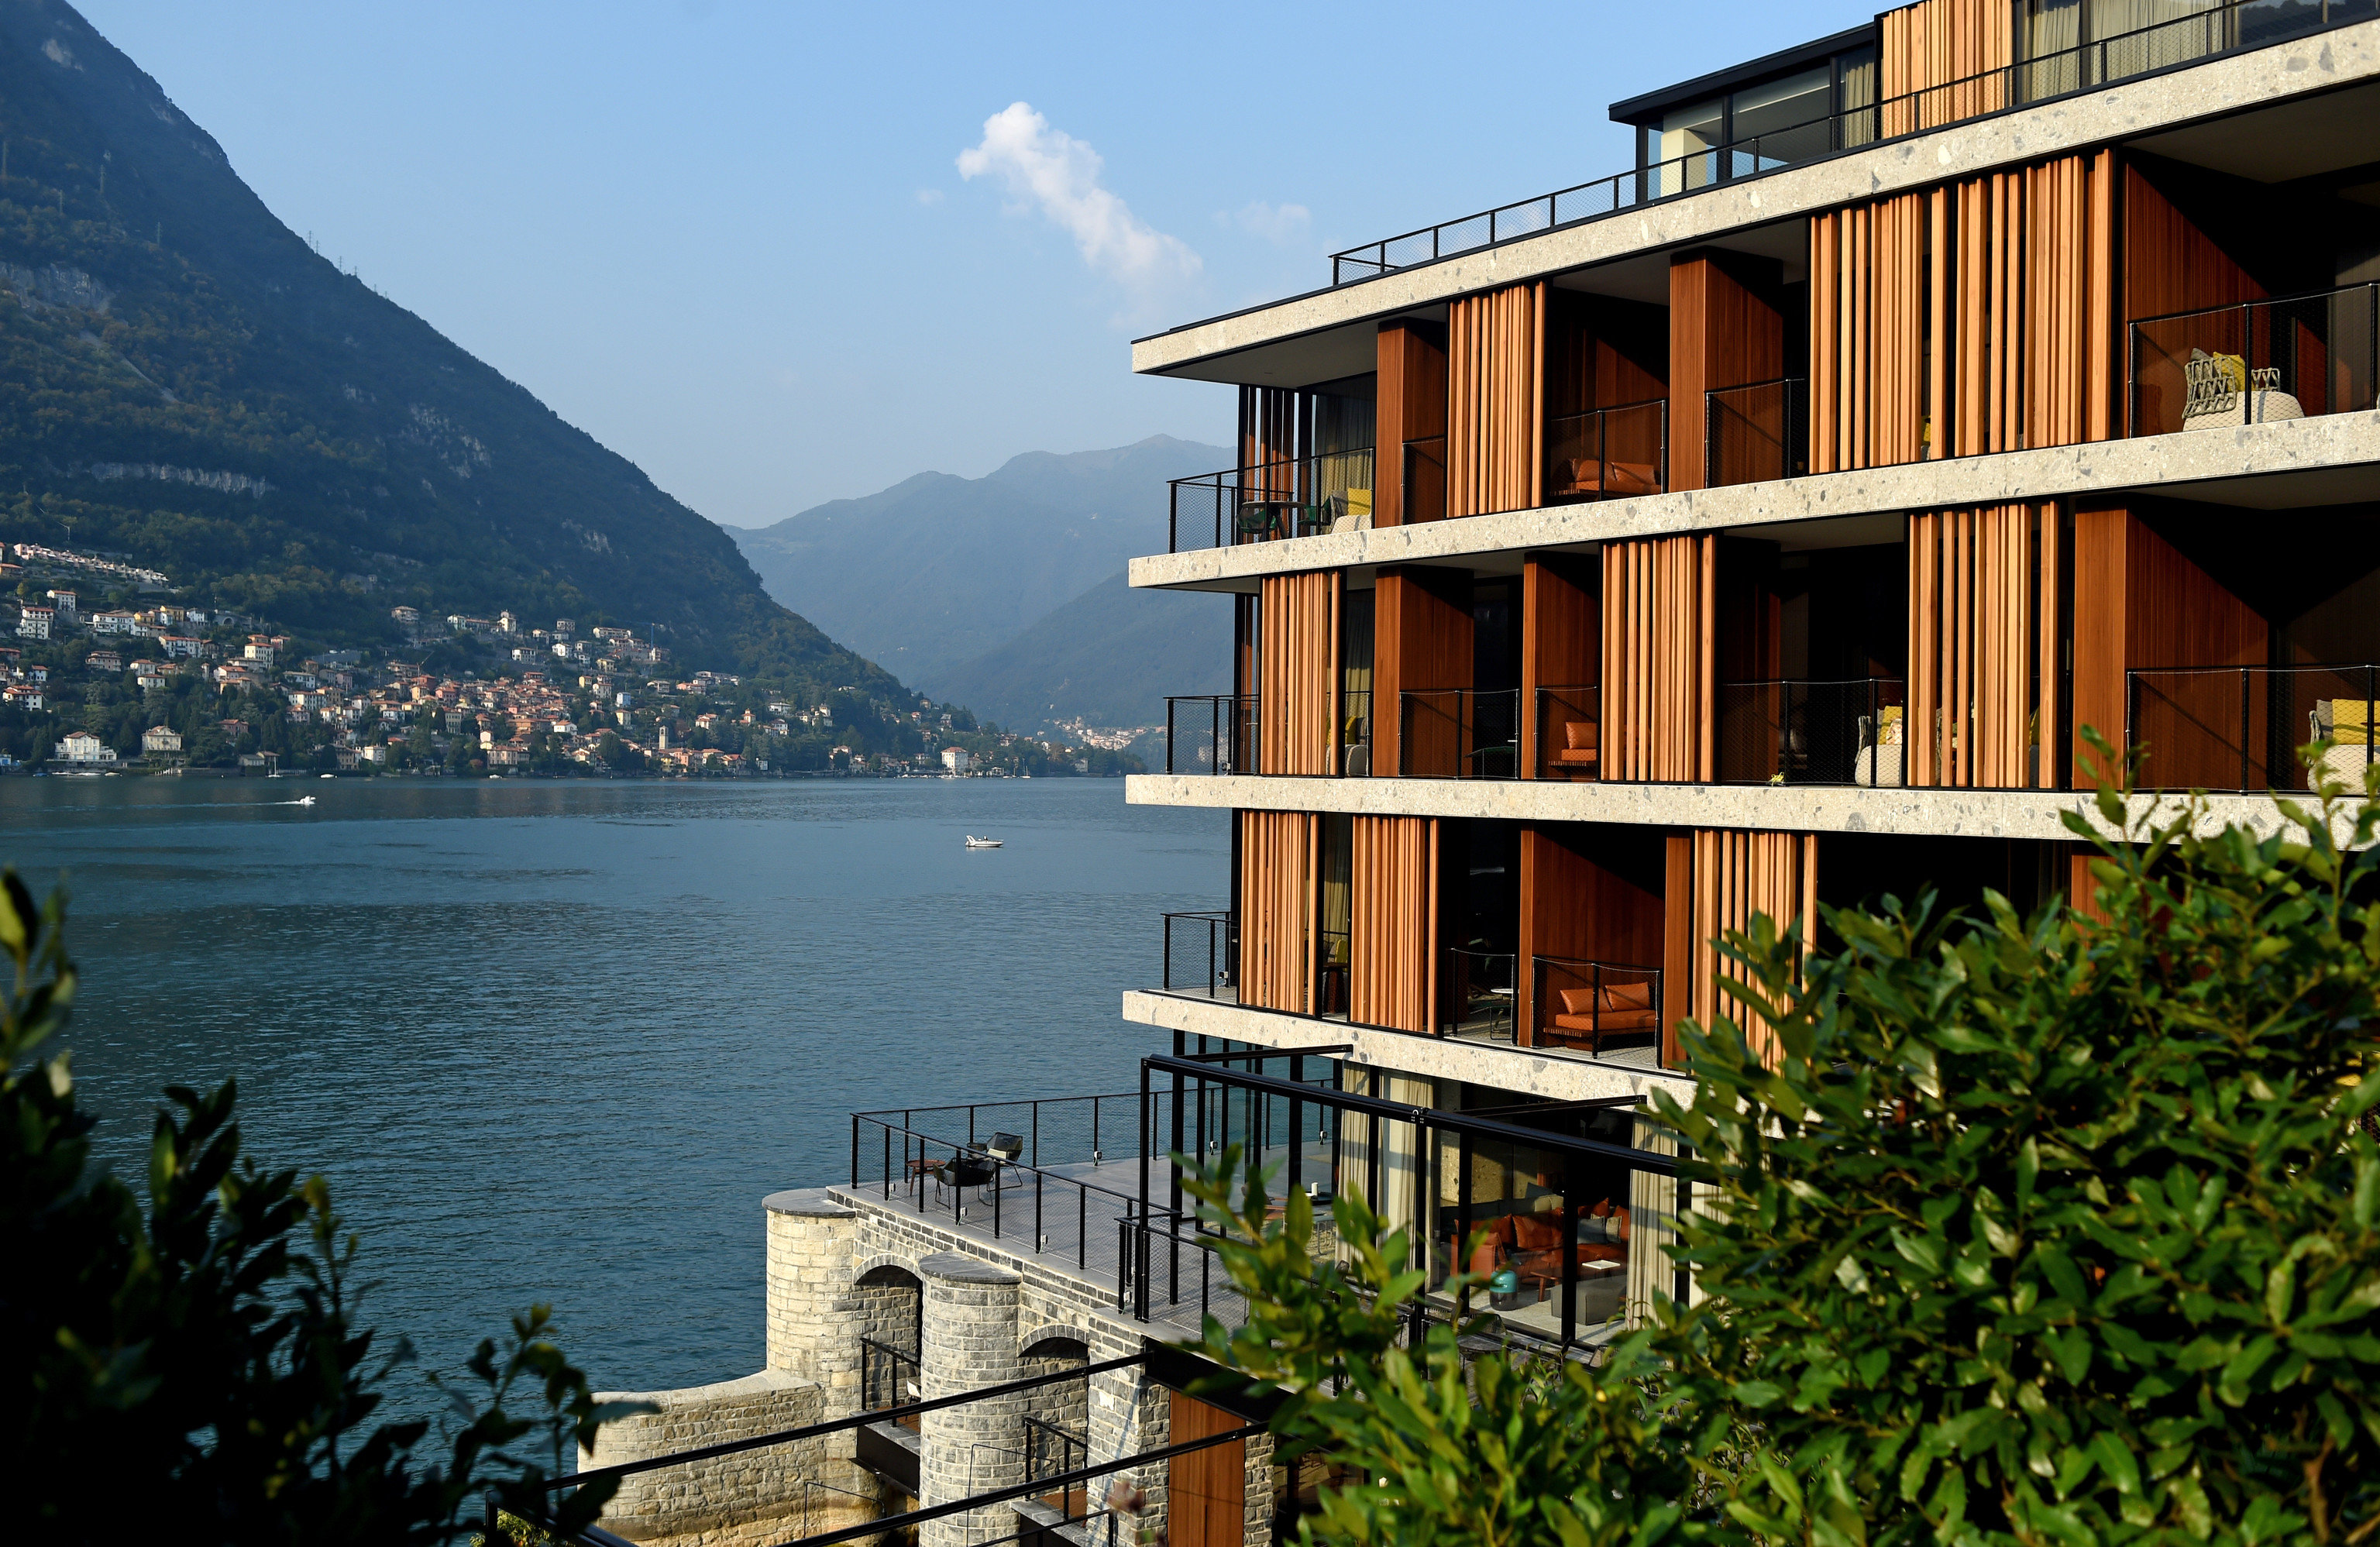 Hotels outdoor sky mountain water house Town vacation condominium estate Resort Sea apartment